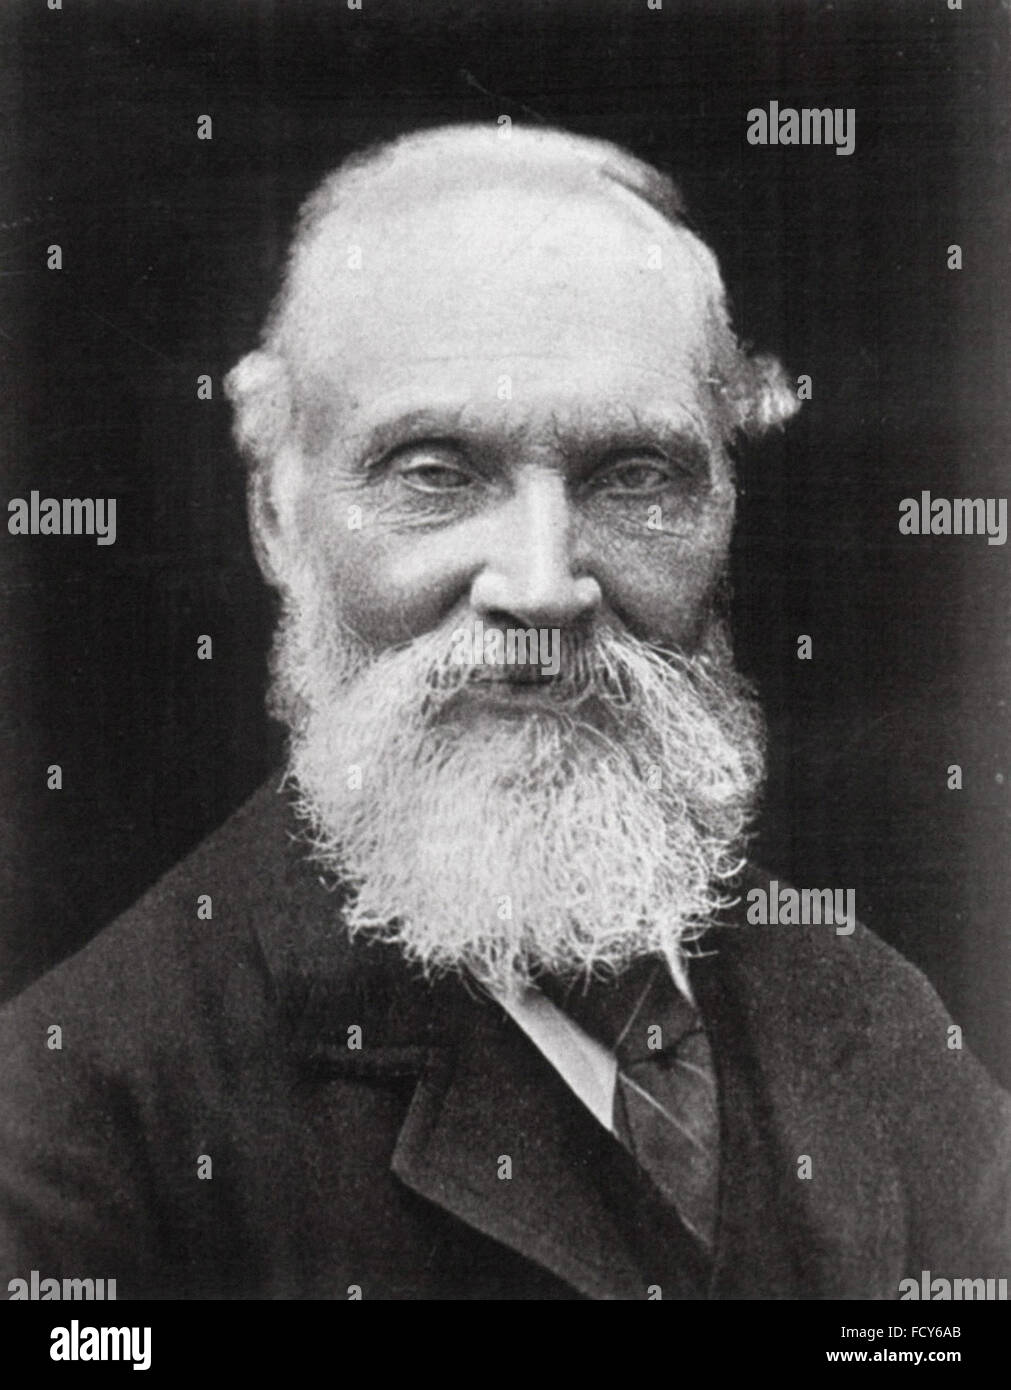 portrait of william thomson baron kelvin 1824 1907 physicist - Stock Image